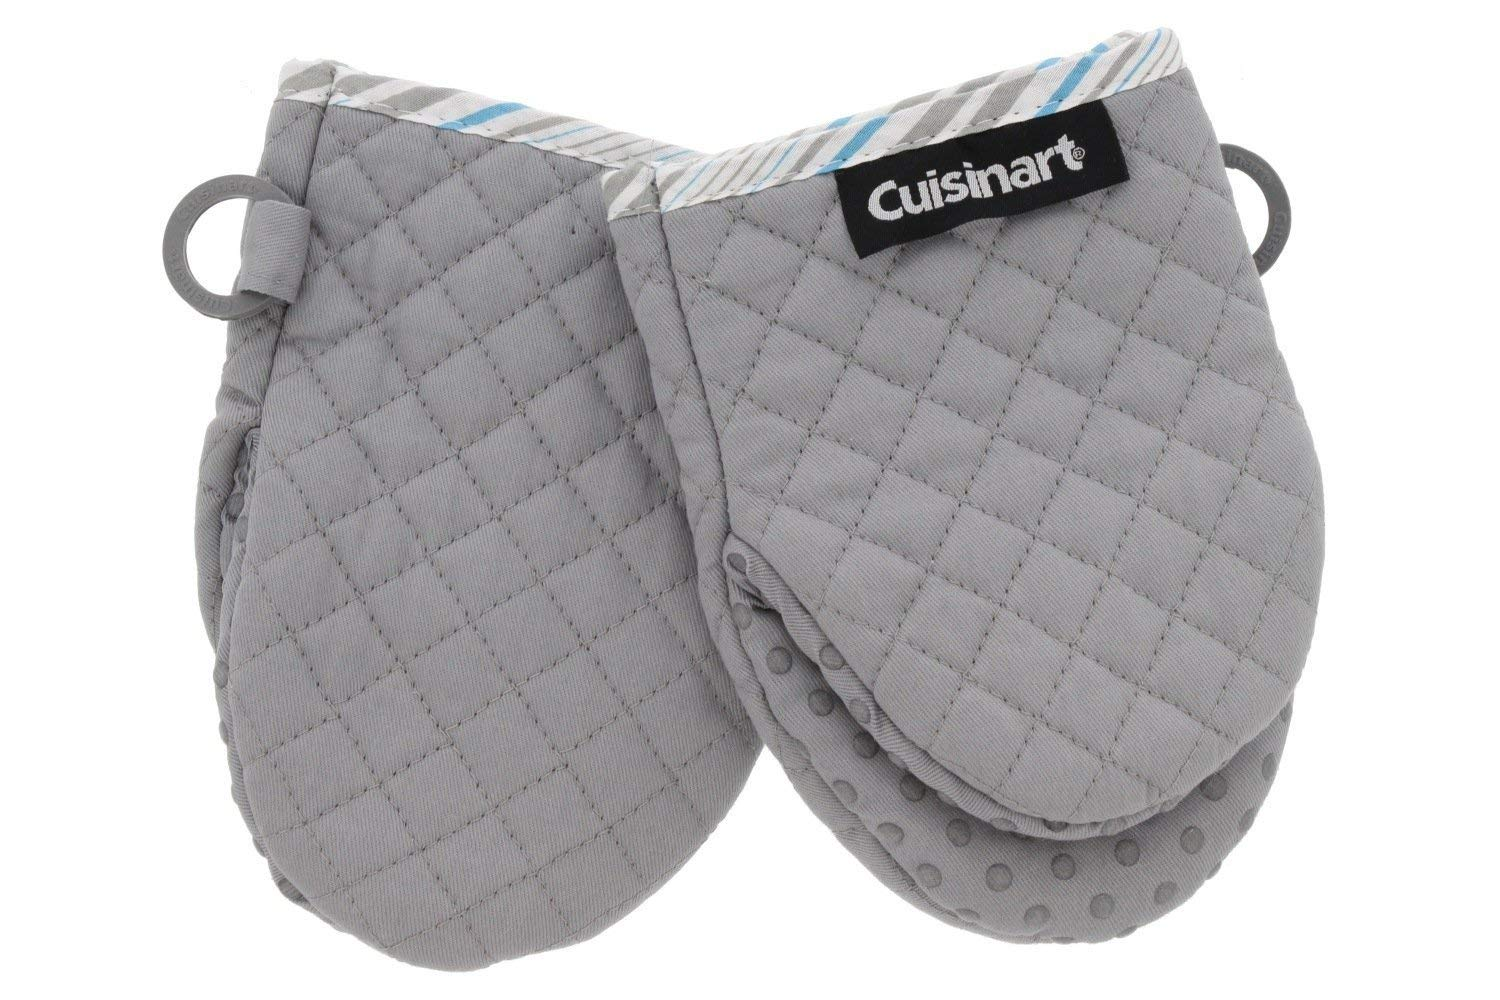 Cuisinart Silicone Mini Oven Mitts, 2pk - Little Oven Gloves for Cooking - Heat Resistant, Non-Slip Grip, Hanging Loop, 5.5 x 7.5 Inches - Ideal for Handling Hot Kitchen, Bakeware Items - Drizzle Grey by Cuisinart